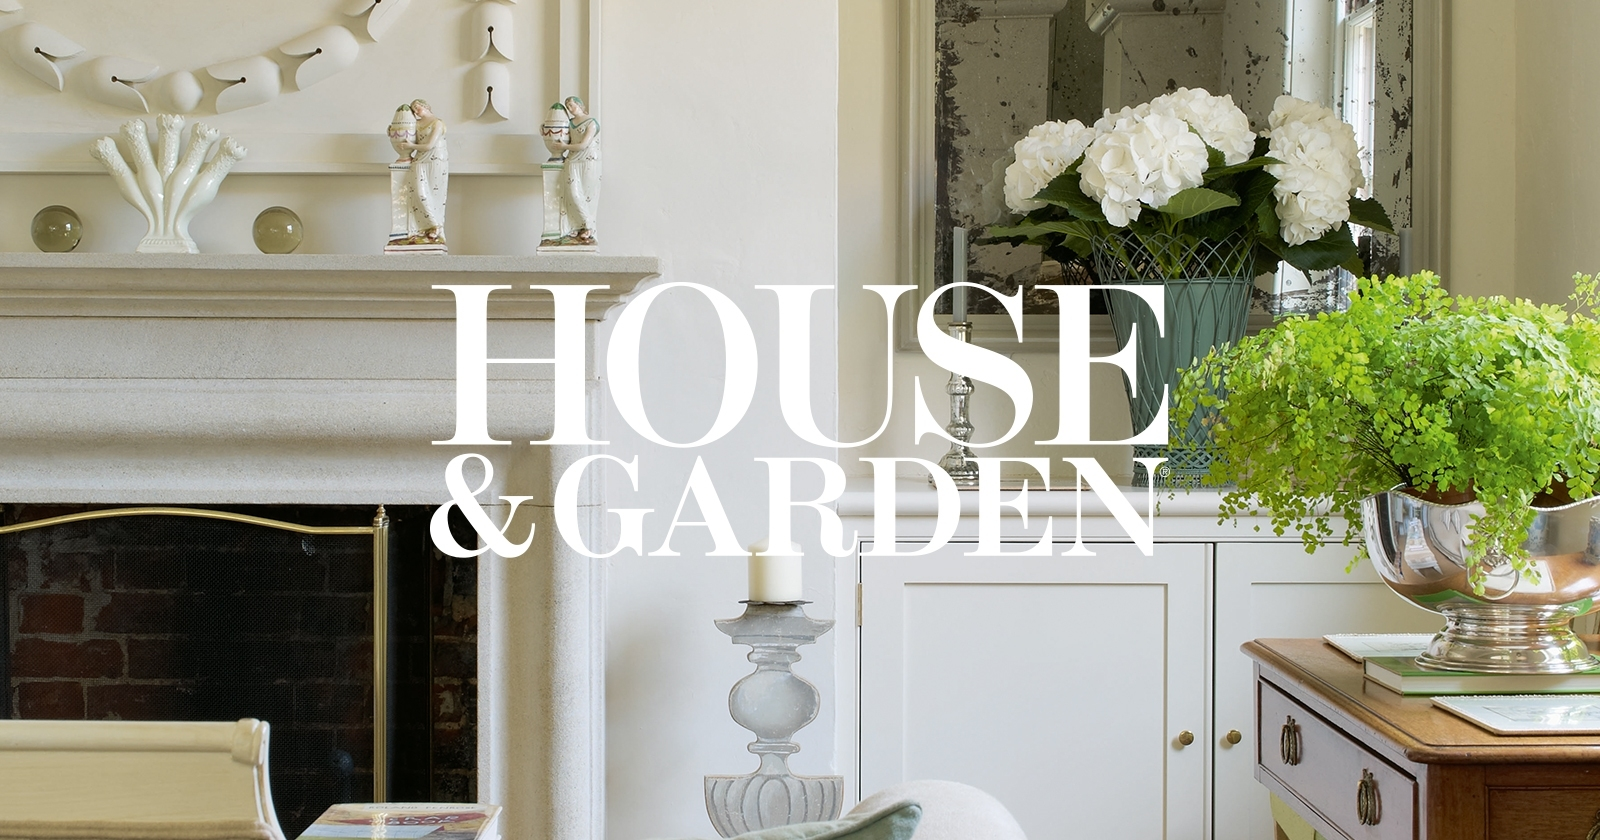 Contact Us | House & Garden with regard to House And Garden Uk Media Kit